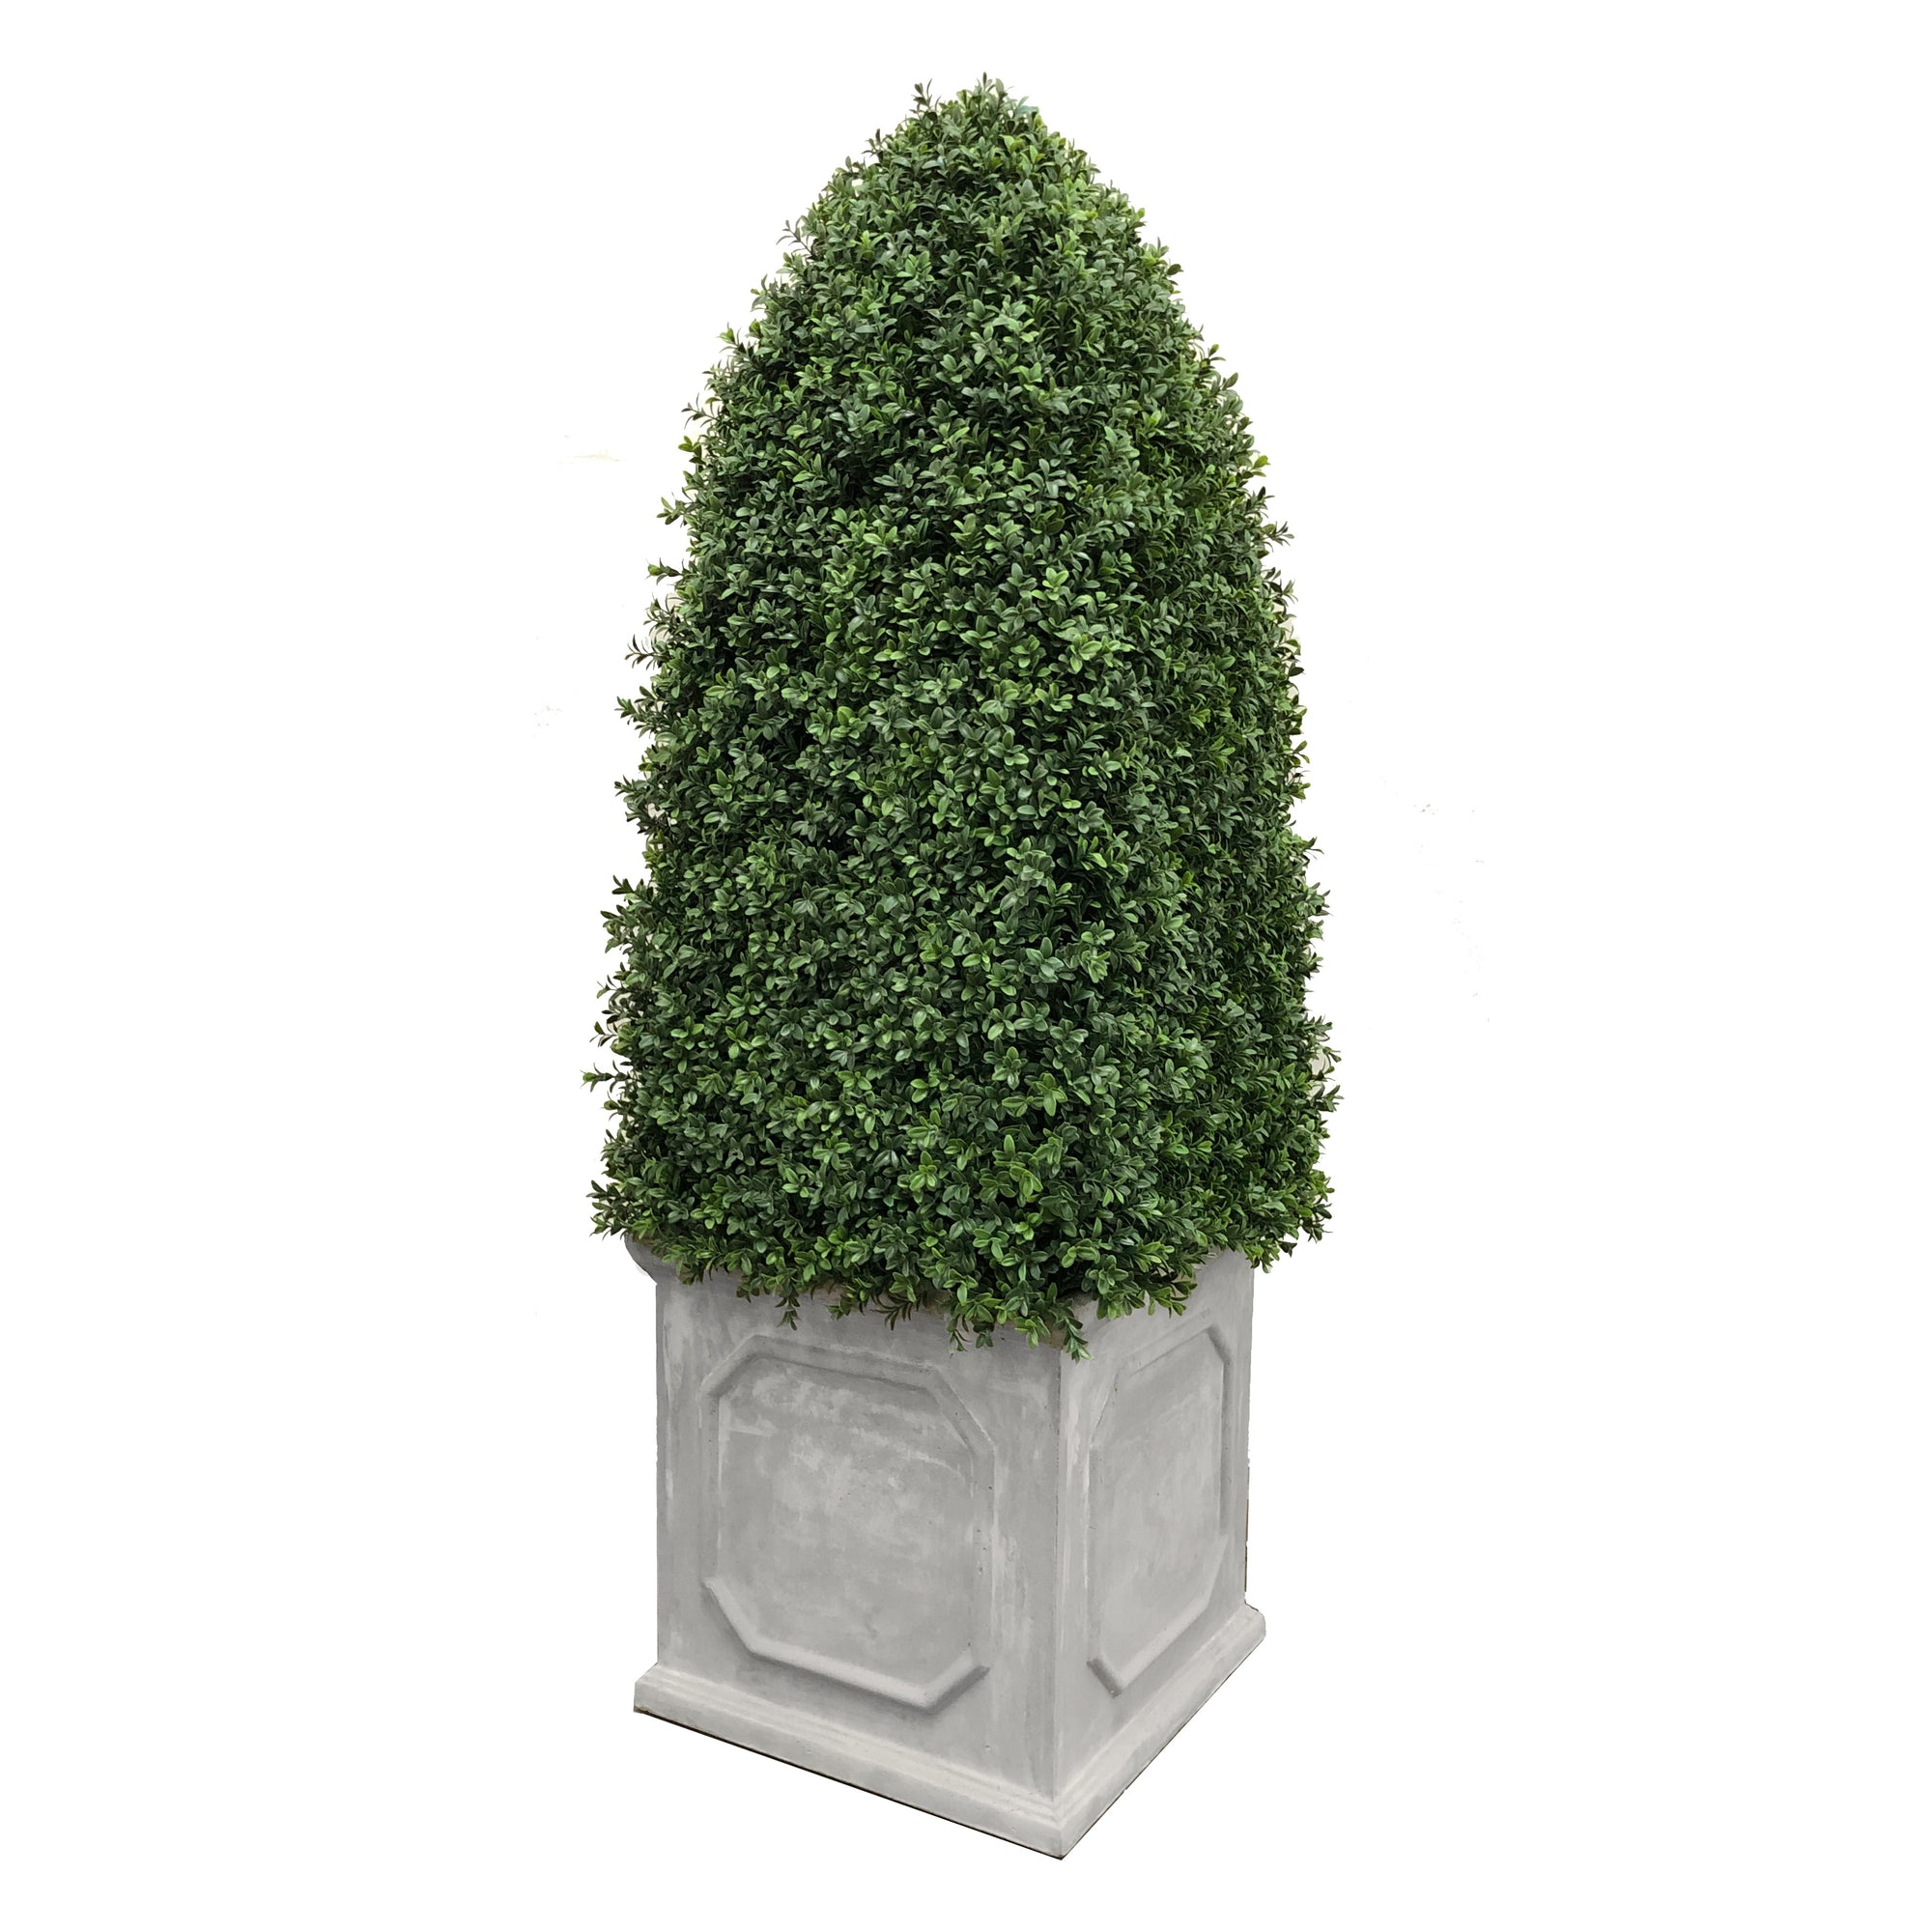 BULLET BOXWOOD IN PLANTER 5'